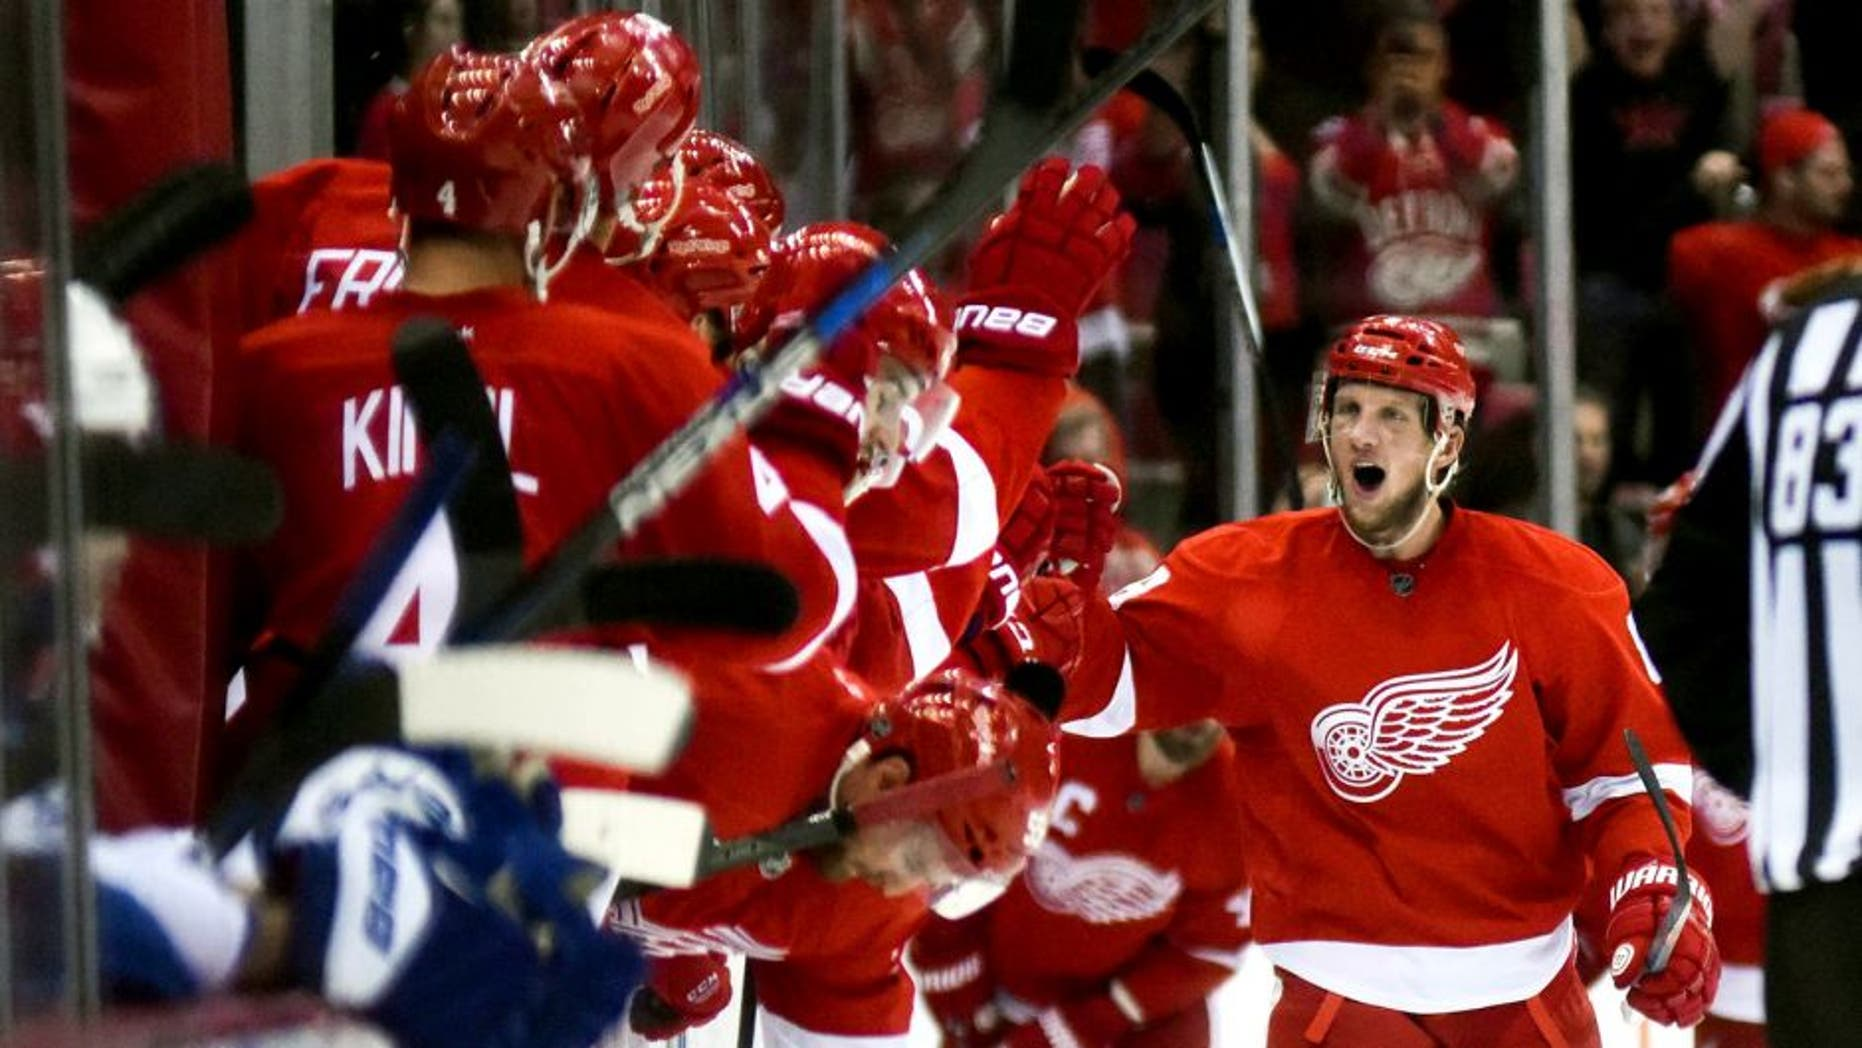 Oct 9, 2015; Detroit, MI, USA; Detroit Red Wings left wing Justin Abdelkader (8) celebrates his goal and hat trick during the second period against the Toronto Maple Leafs at Joe Louis Arena. Mandatory Credit: Tim Fuller-USA TODAY Sports